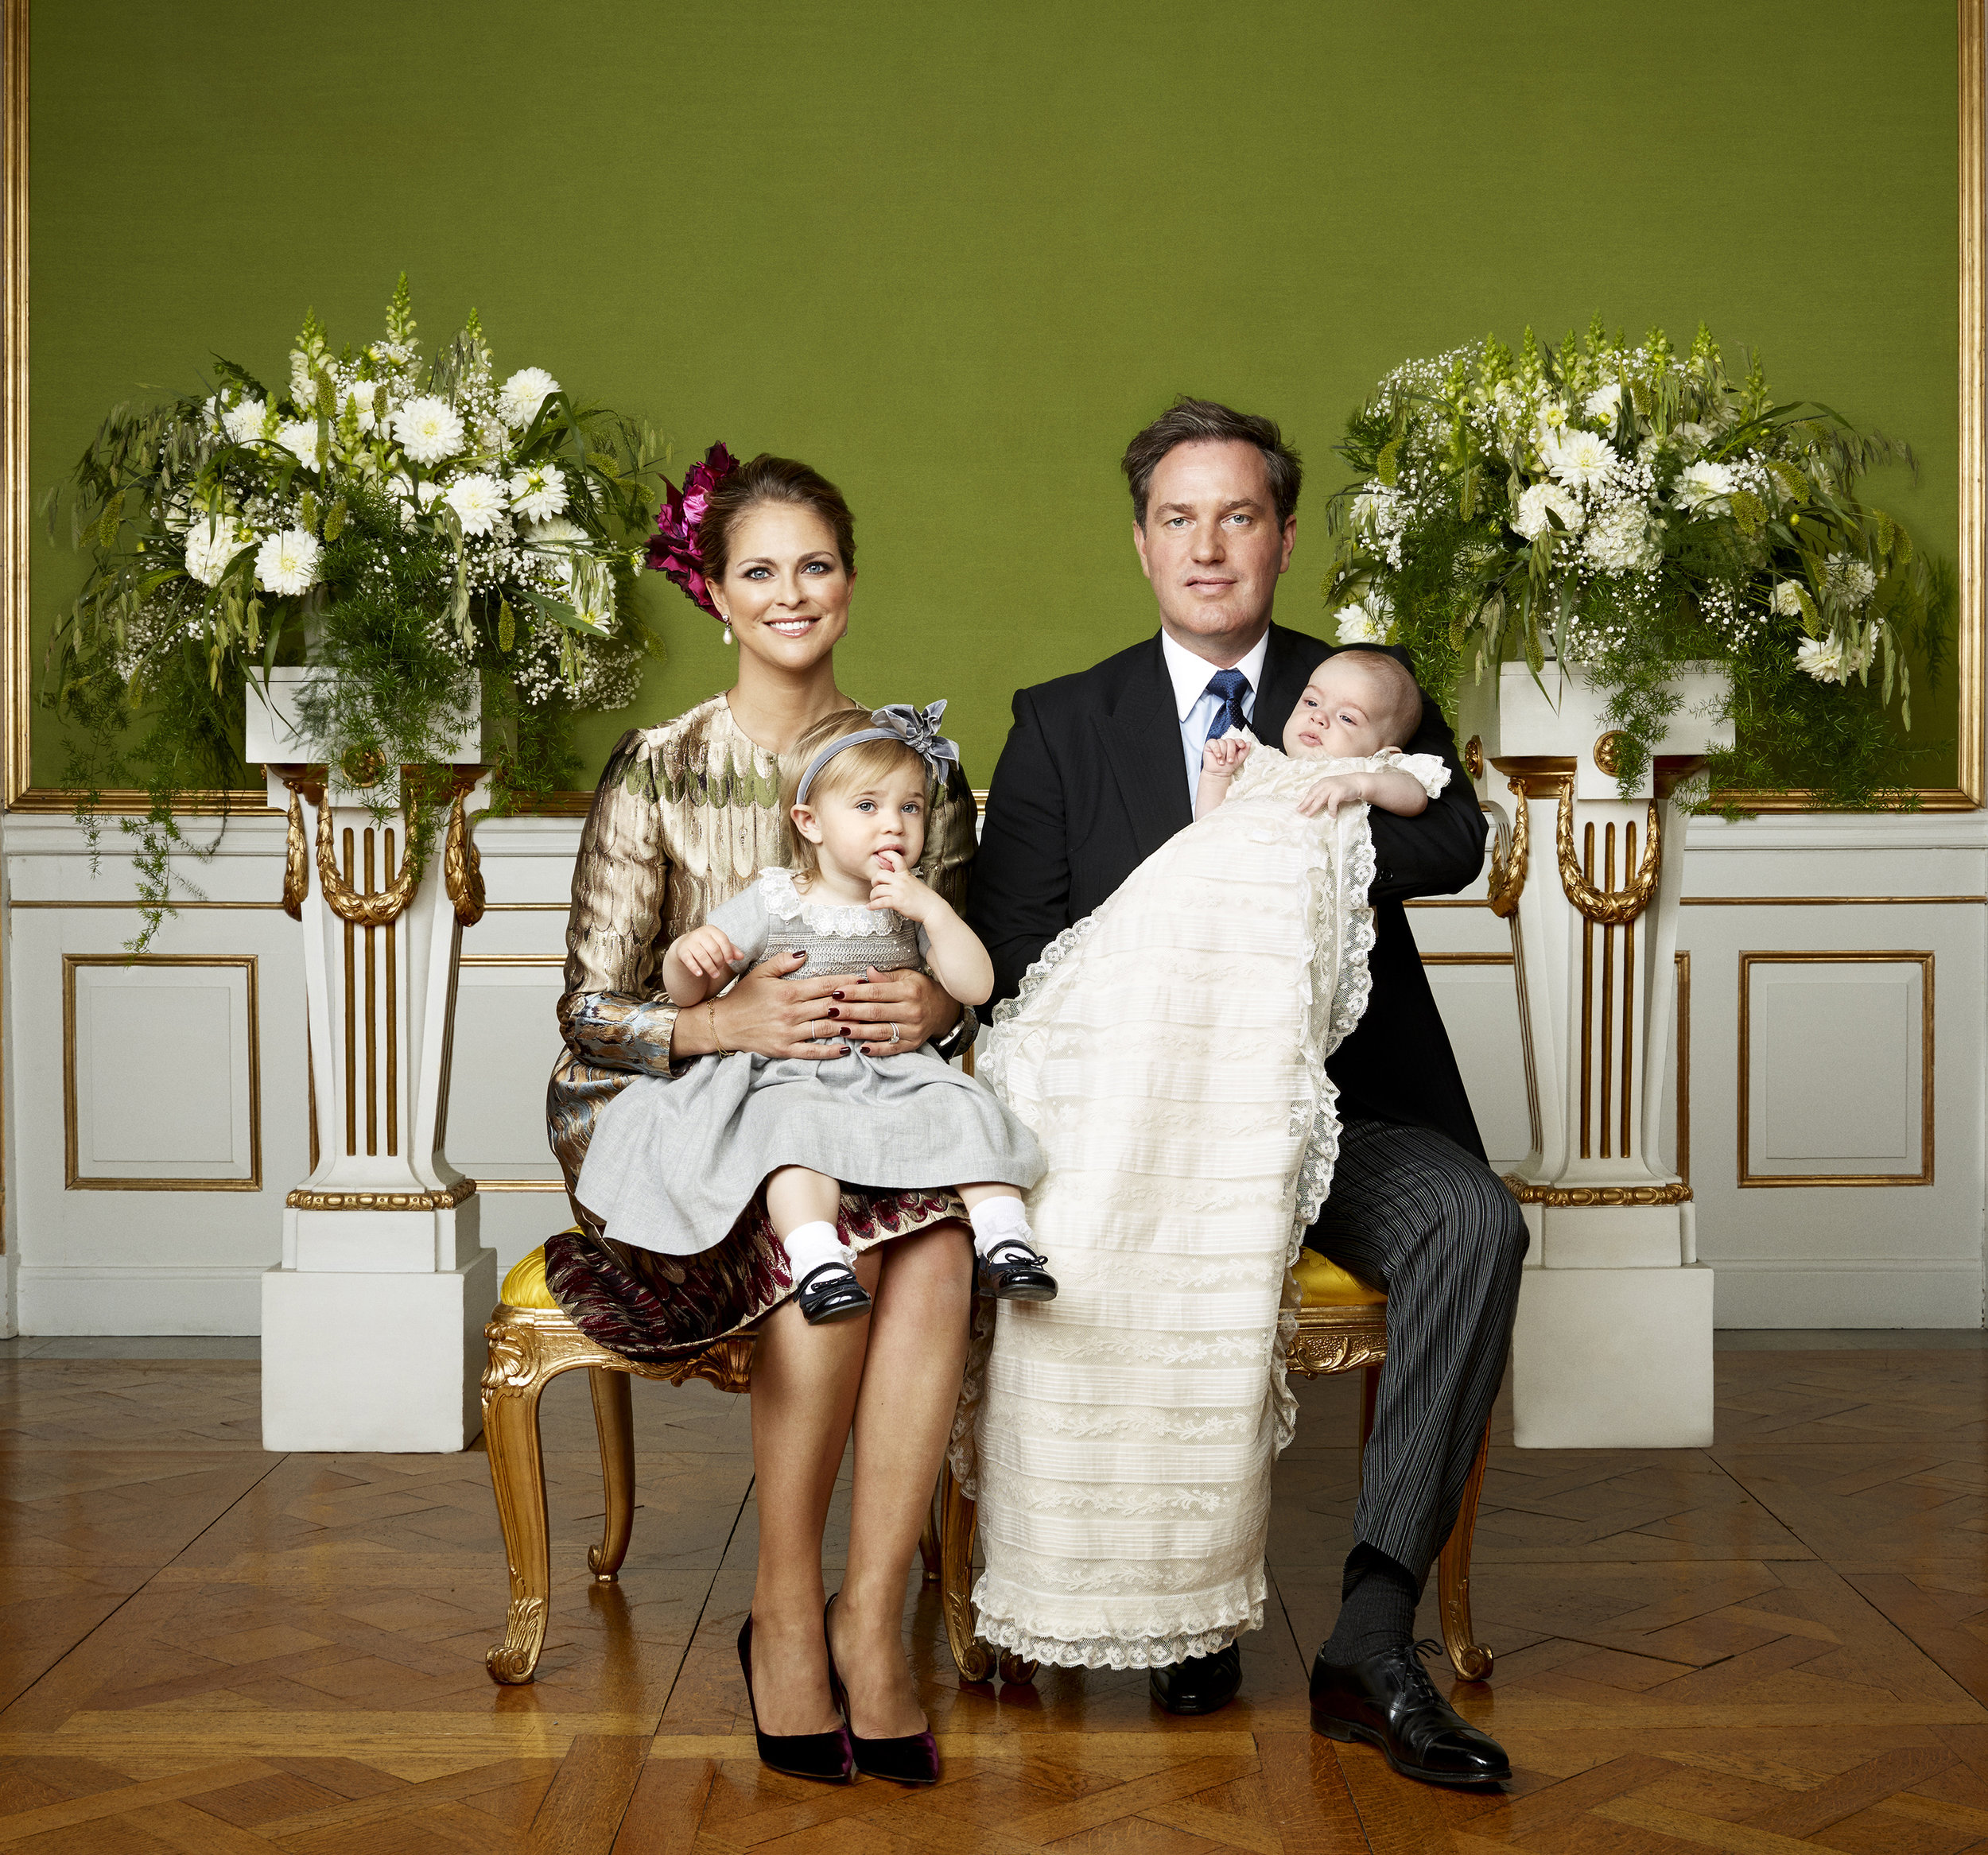 H.R.H. Prince Nicolas christening in Drottningholm Palace Chapel, October 11, 2015. Pictured here with his mother, Princess Madeleine; father, Christopher O'Neill; and sister, Princess Leonore. Photo: Mattias Edwall, The Royal Court, Sweden